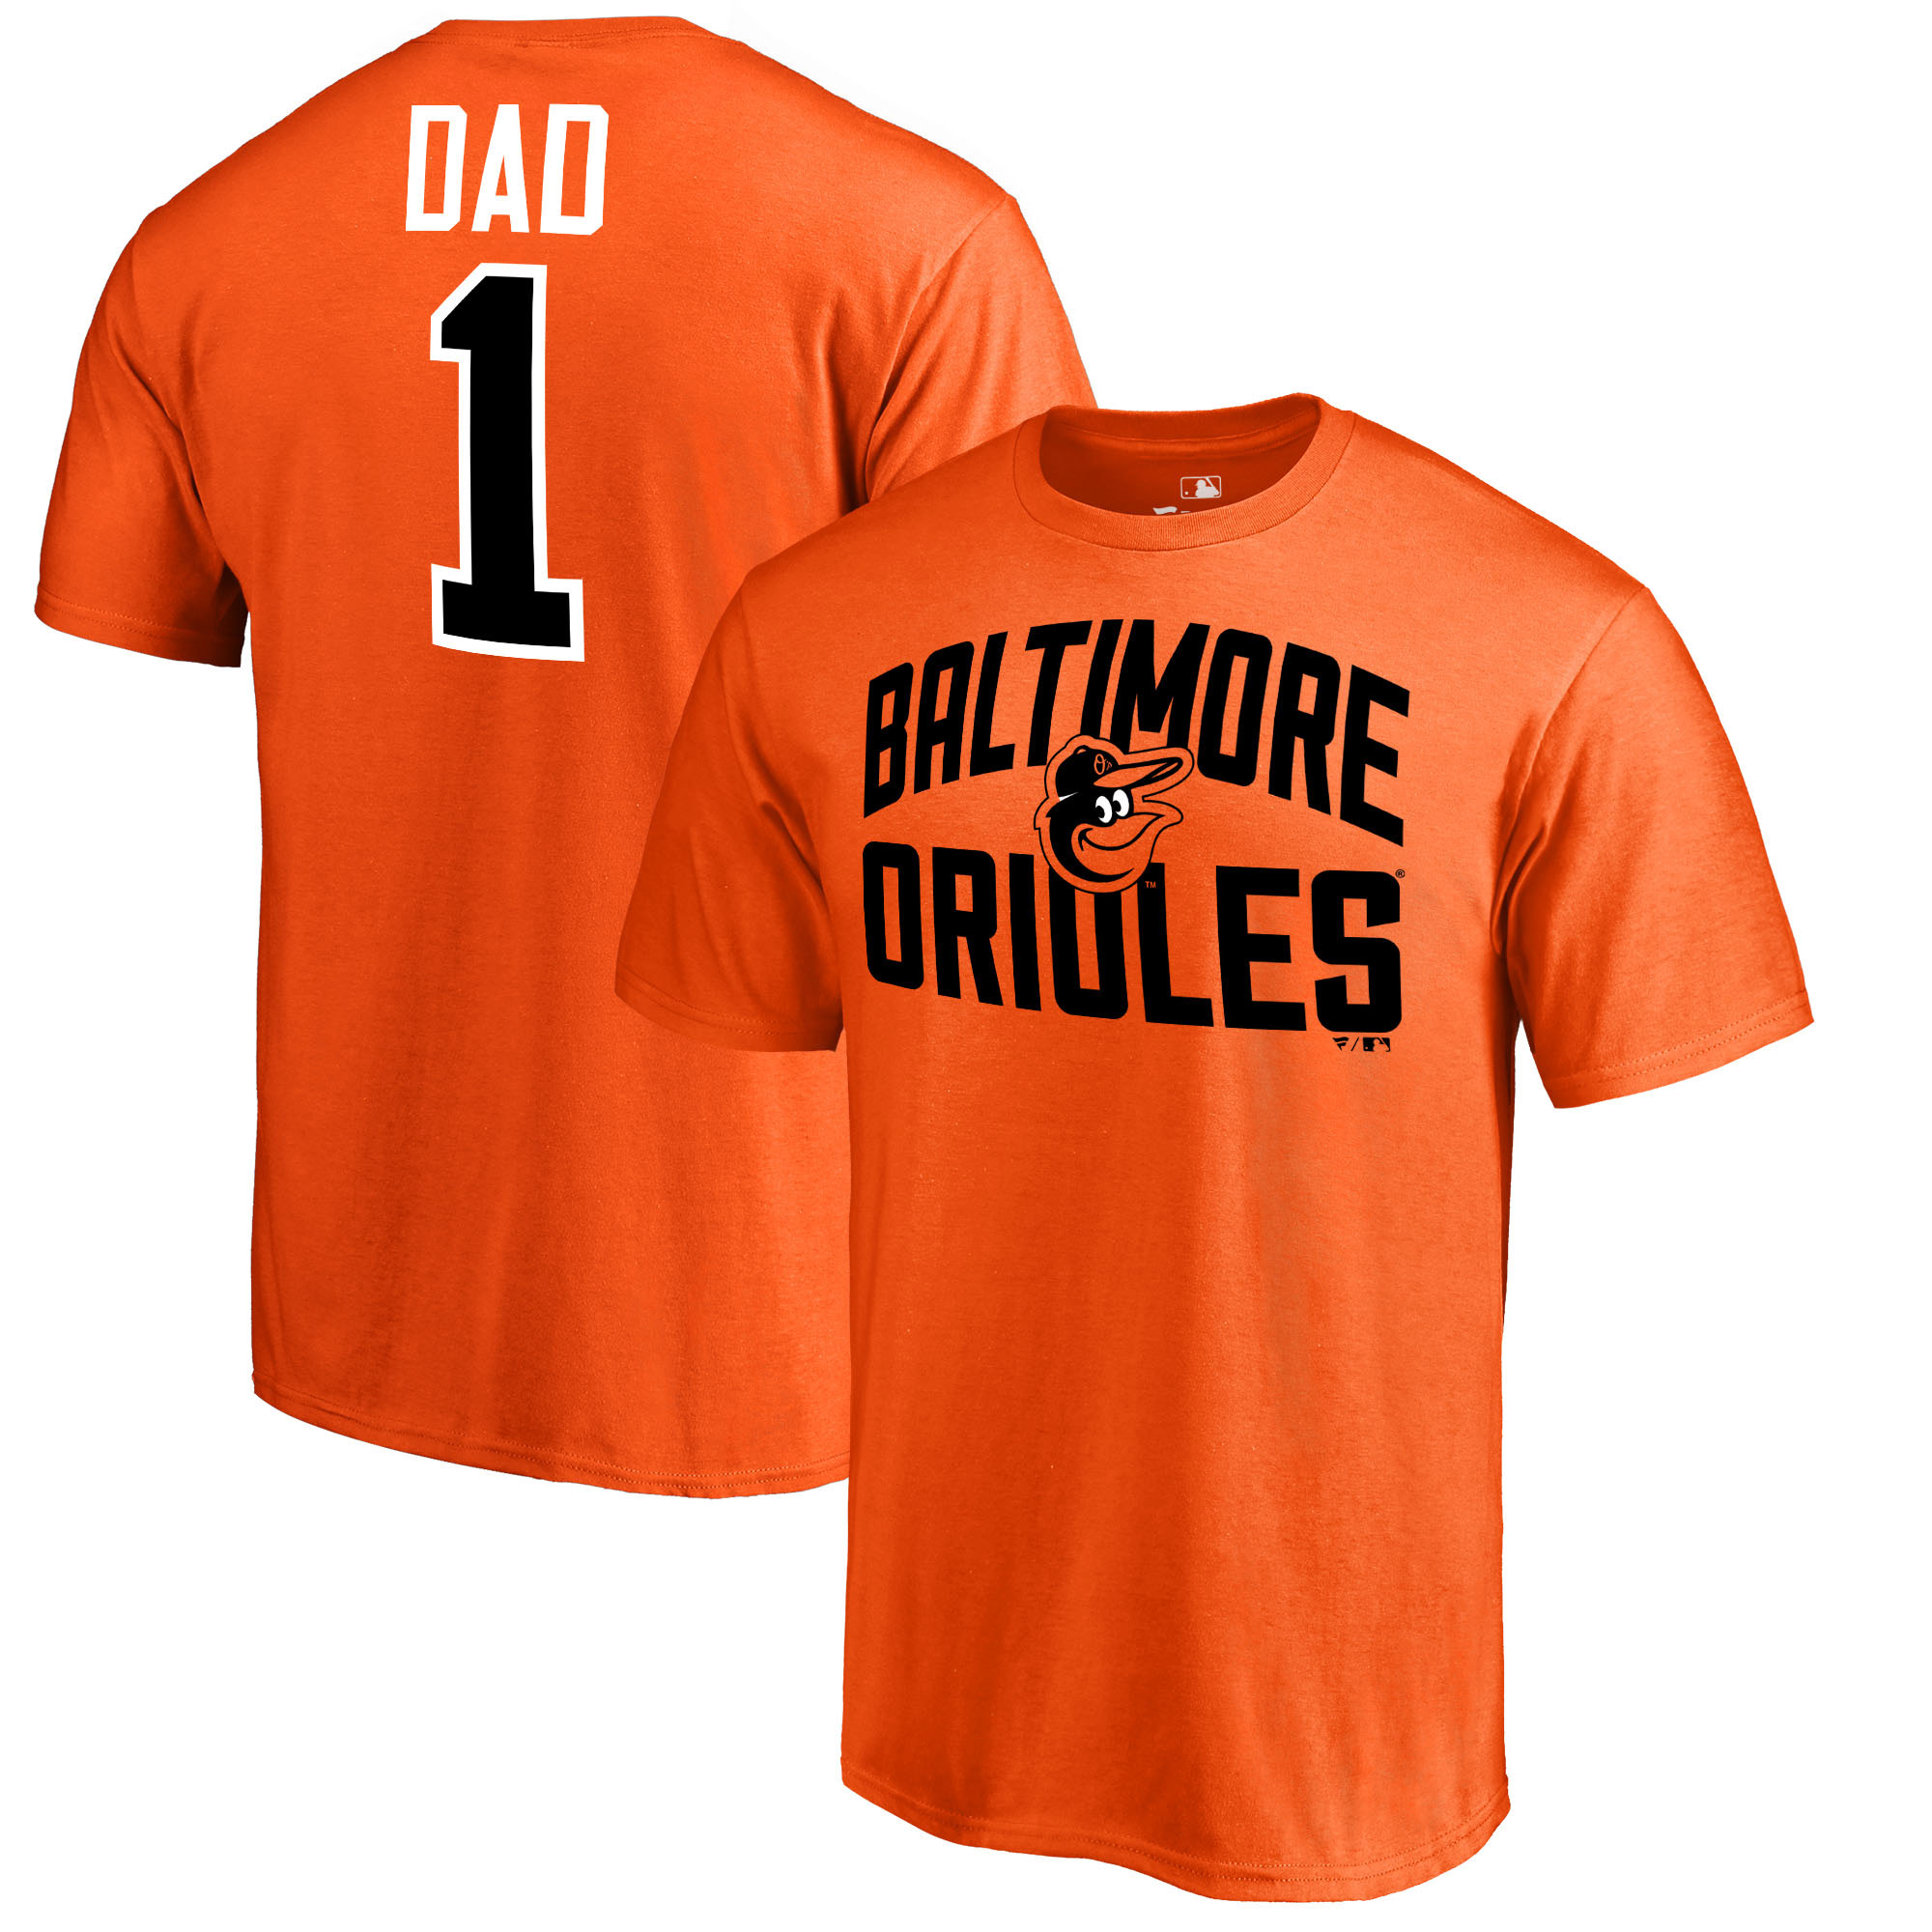 Baltimore Orioles Fanatics Branded 2018 Father's Day Number 1 Dad T-Shirt - Orange